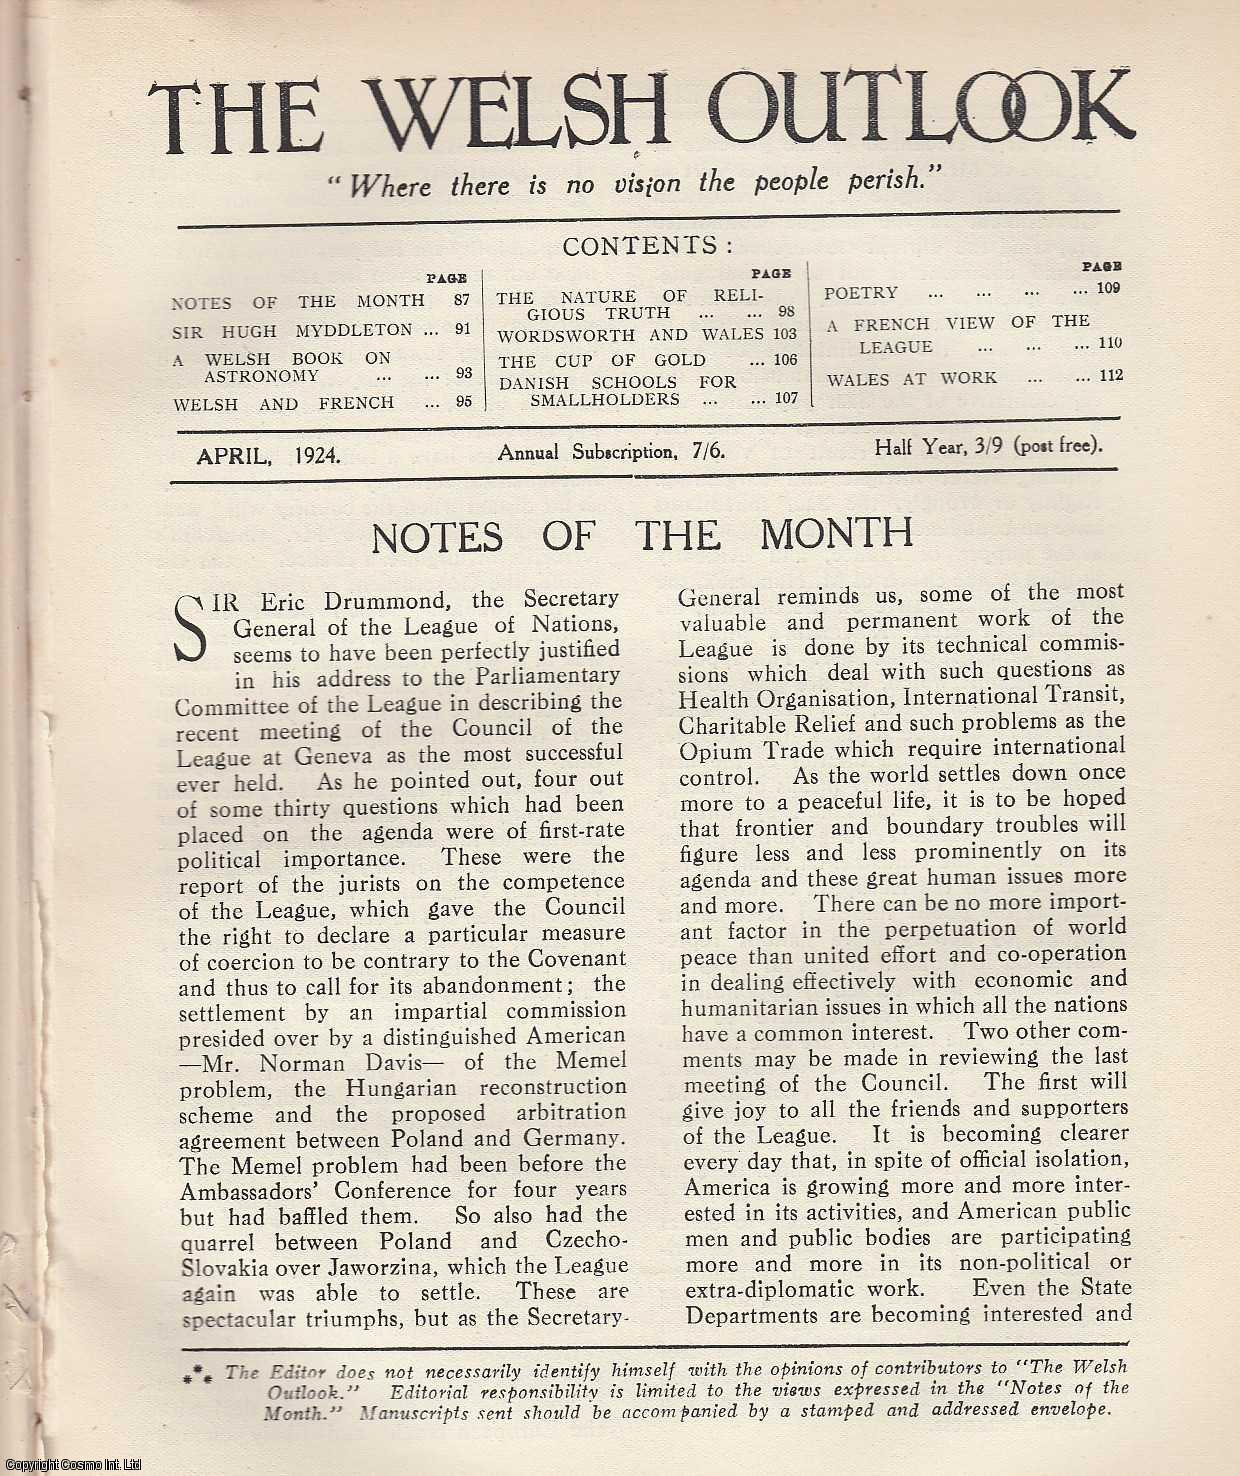 The Welsh Outlook. A Monthly Journal of National Social Progress. April, 1924. Contains; Sir Hugh Myddleton by Evan Jenkins; A Welsh Book on Astronomy by Ifor C. Jones; Welsh and French by Professor O.H. Fynes-Clinton; The Nature of Religious Truth by Rev. Dr. E.E. Thomas; Wordsworth and Wales by Professor H. Wright; The Cup of Gold by Elfyn Williams David; The Danish Schools for Smallholders by Edgar Thomas; A French View of The League by A.O. Roberts; Wales at Work - A Diary of Things Said and Done., Thomas Jones (Editor)